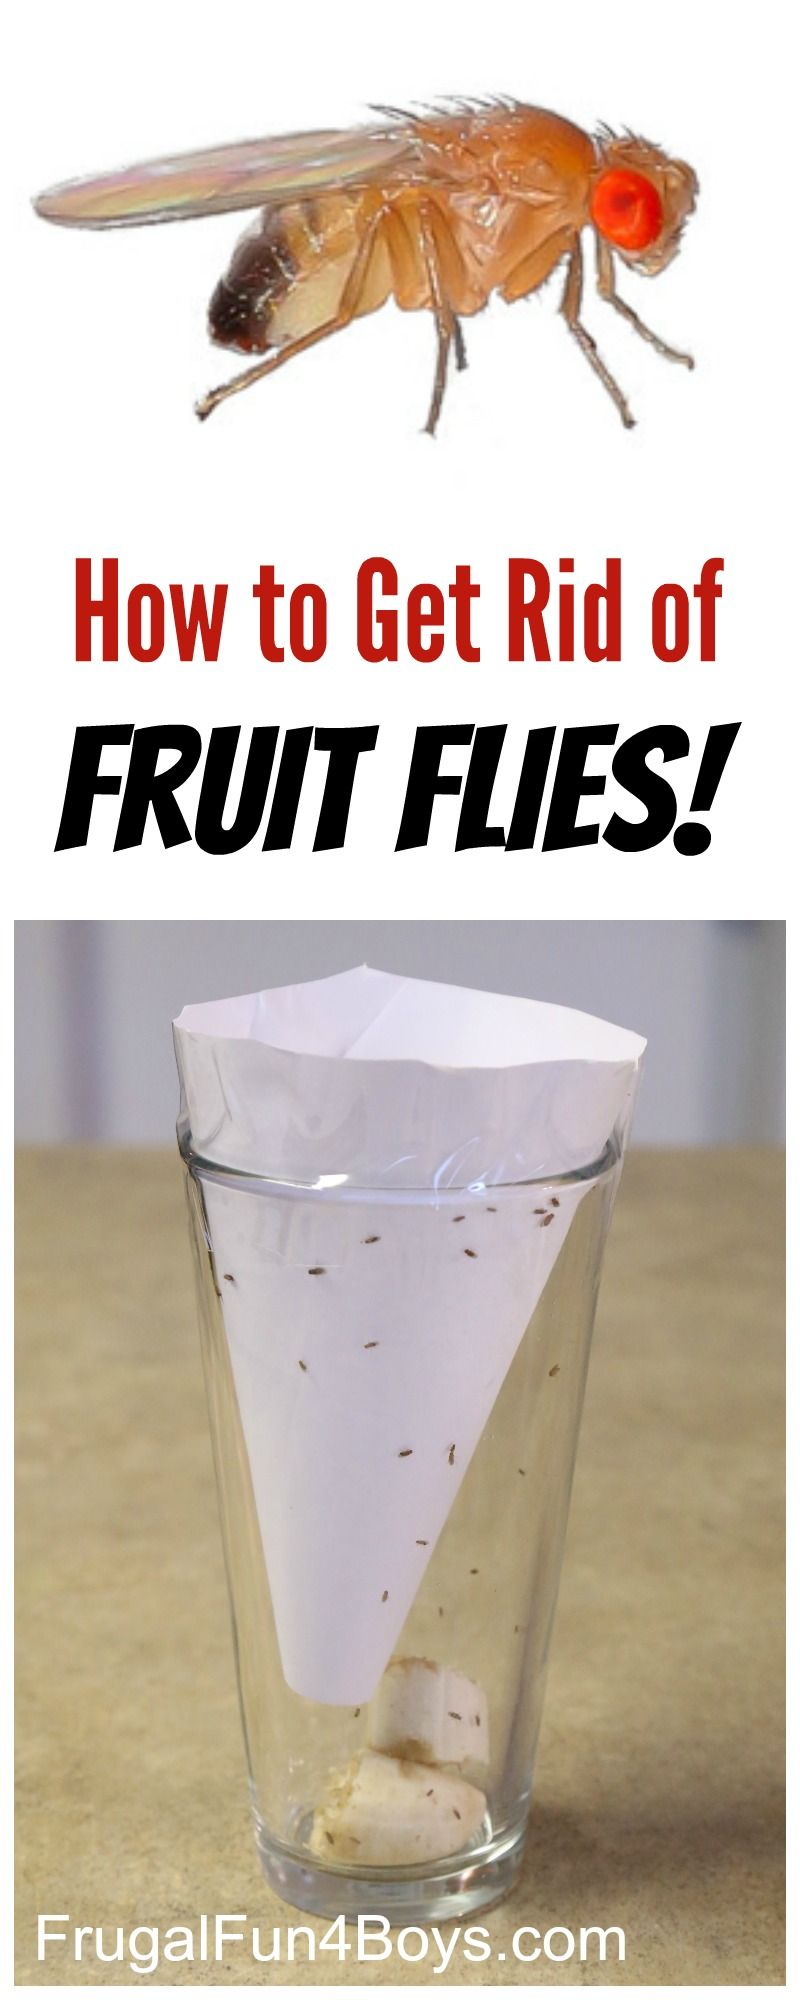 How To Get Rid Of Small Bathroom Flies: How To Get Rid Of Fruit Flies